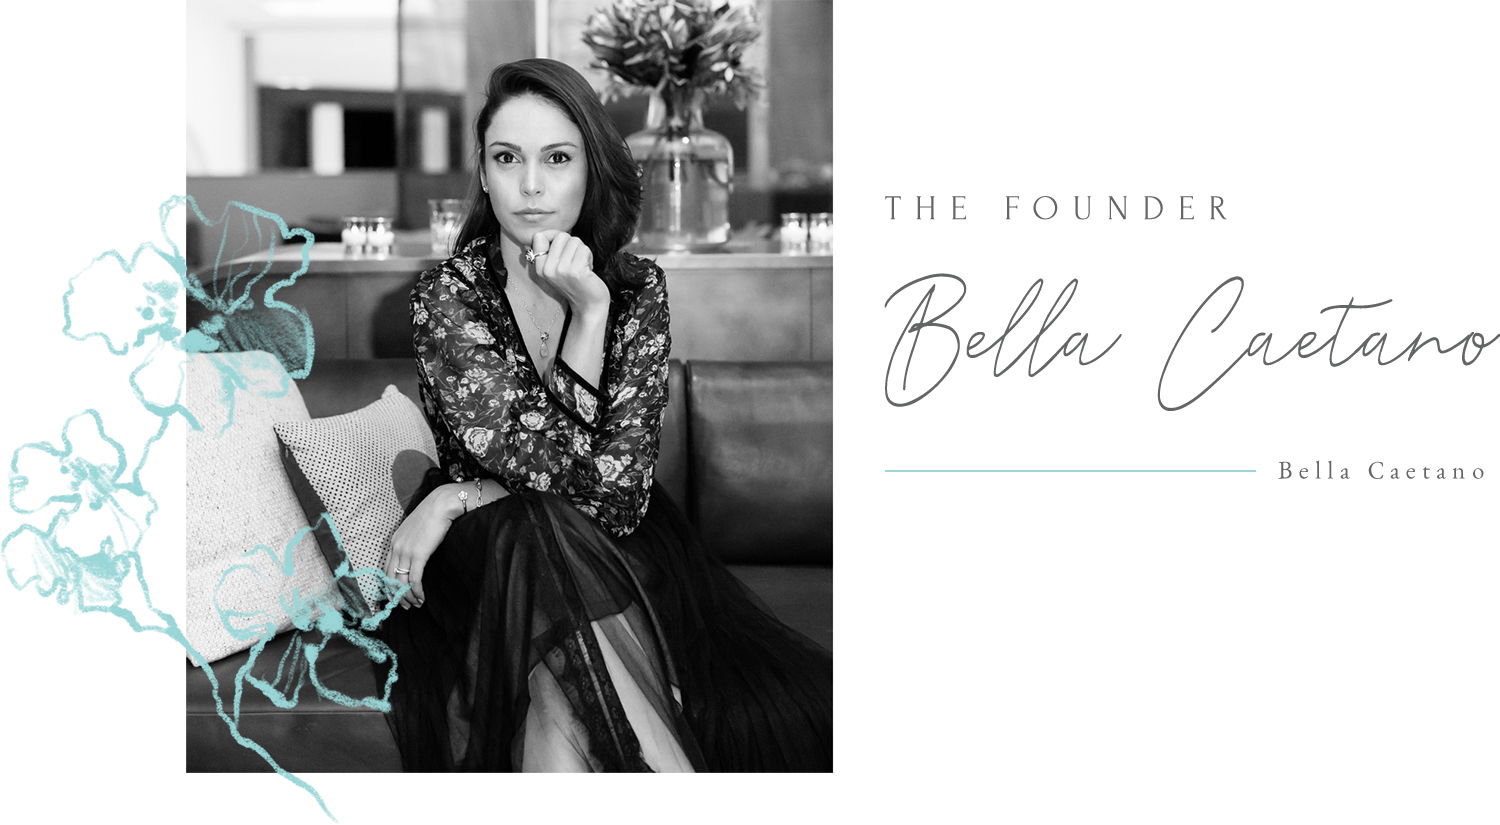 About Bella Caetano - Founder